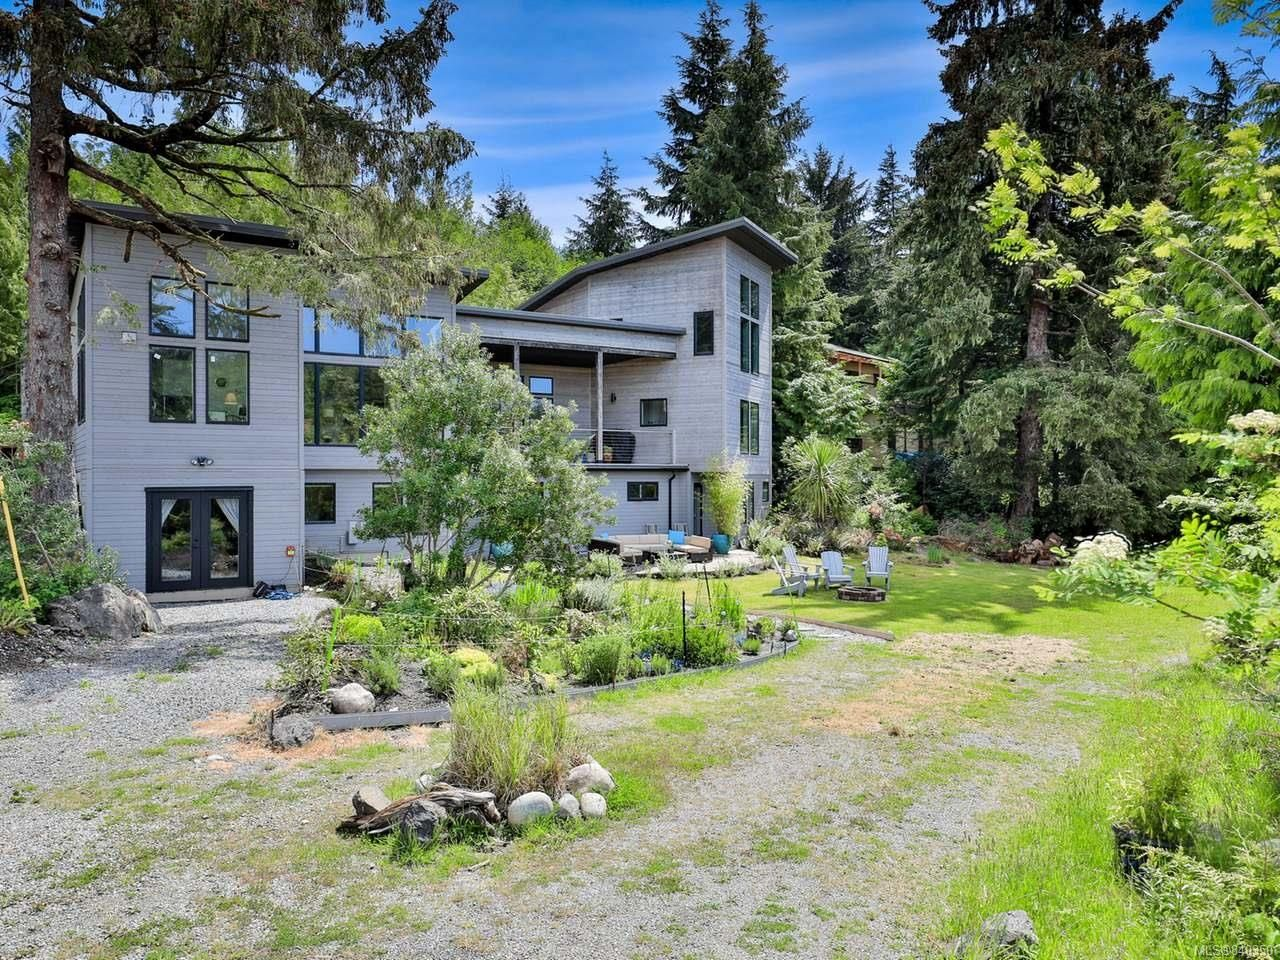 Photo 56: Photos: 1068 Helen Rd in UCLUELET: PA Ucluelet House for sale (Port Alberni)  : MLS®# 840350